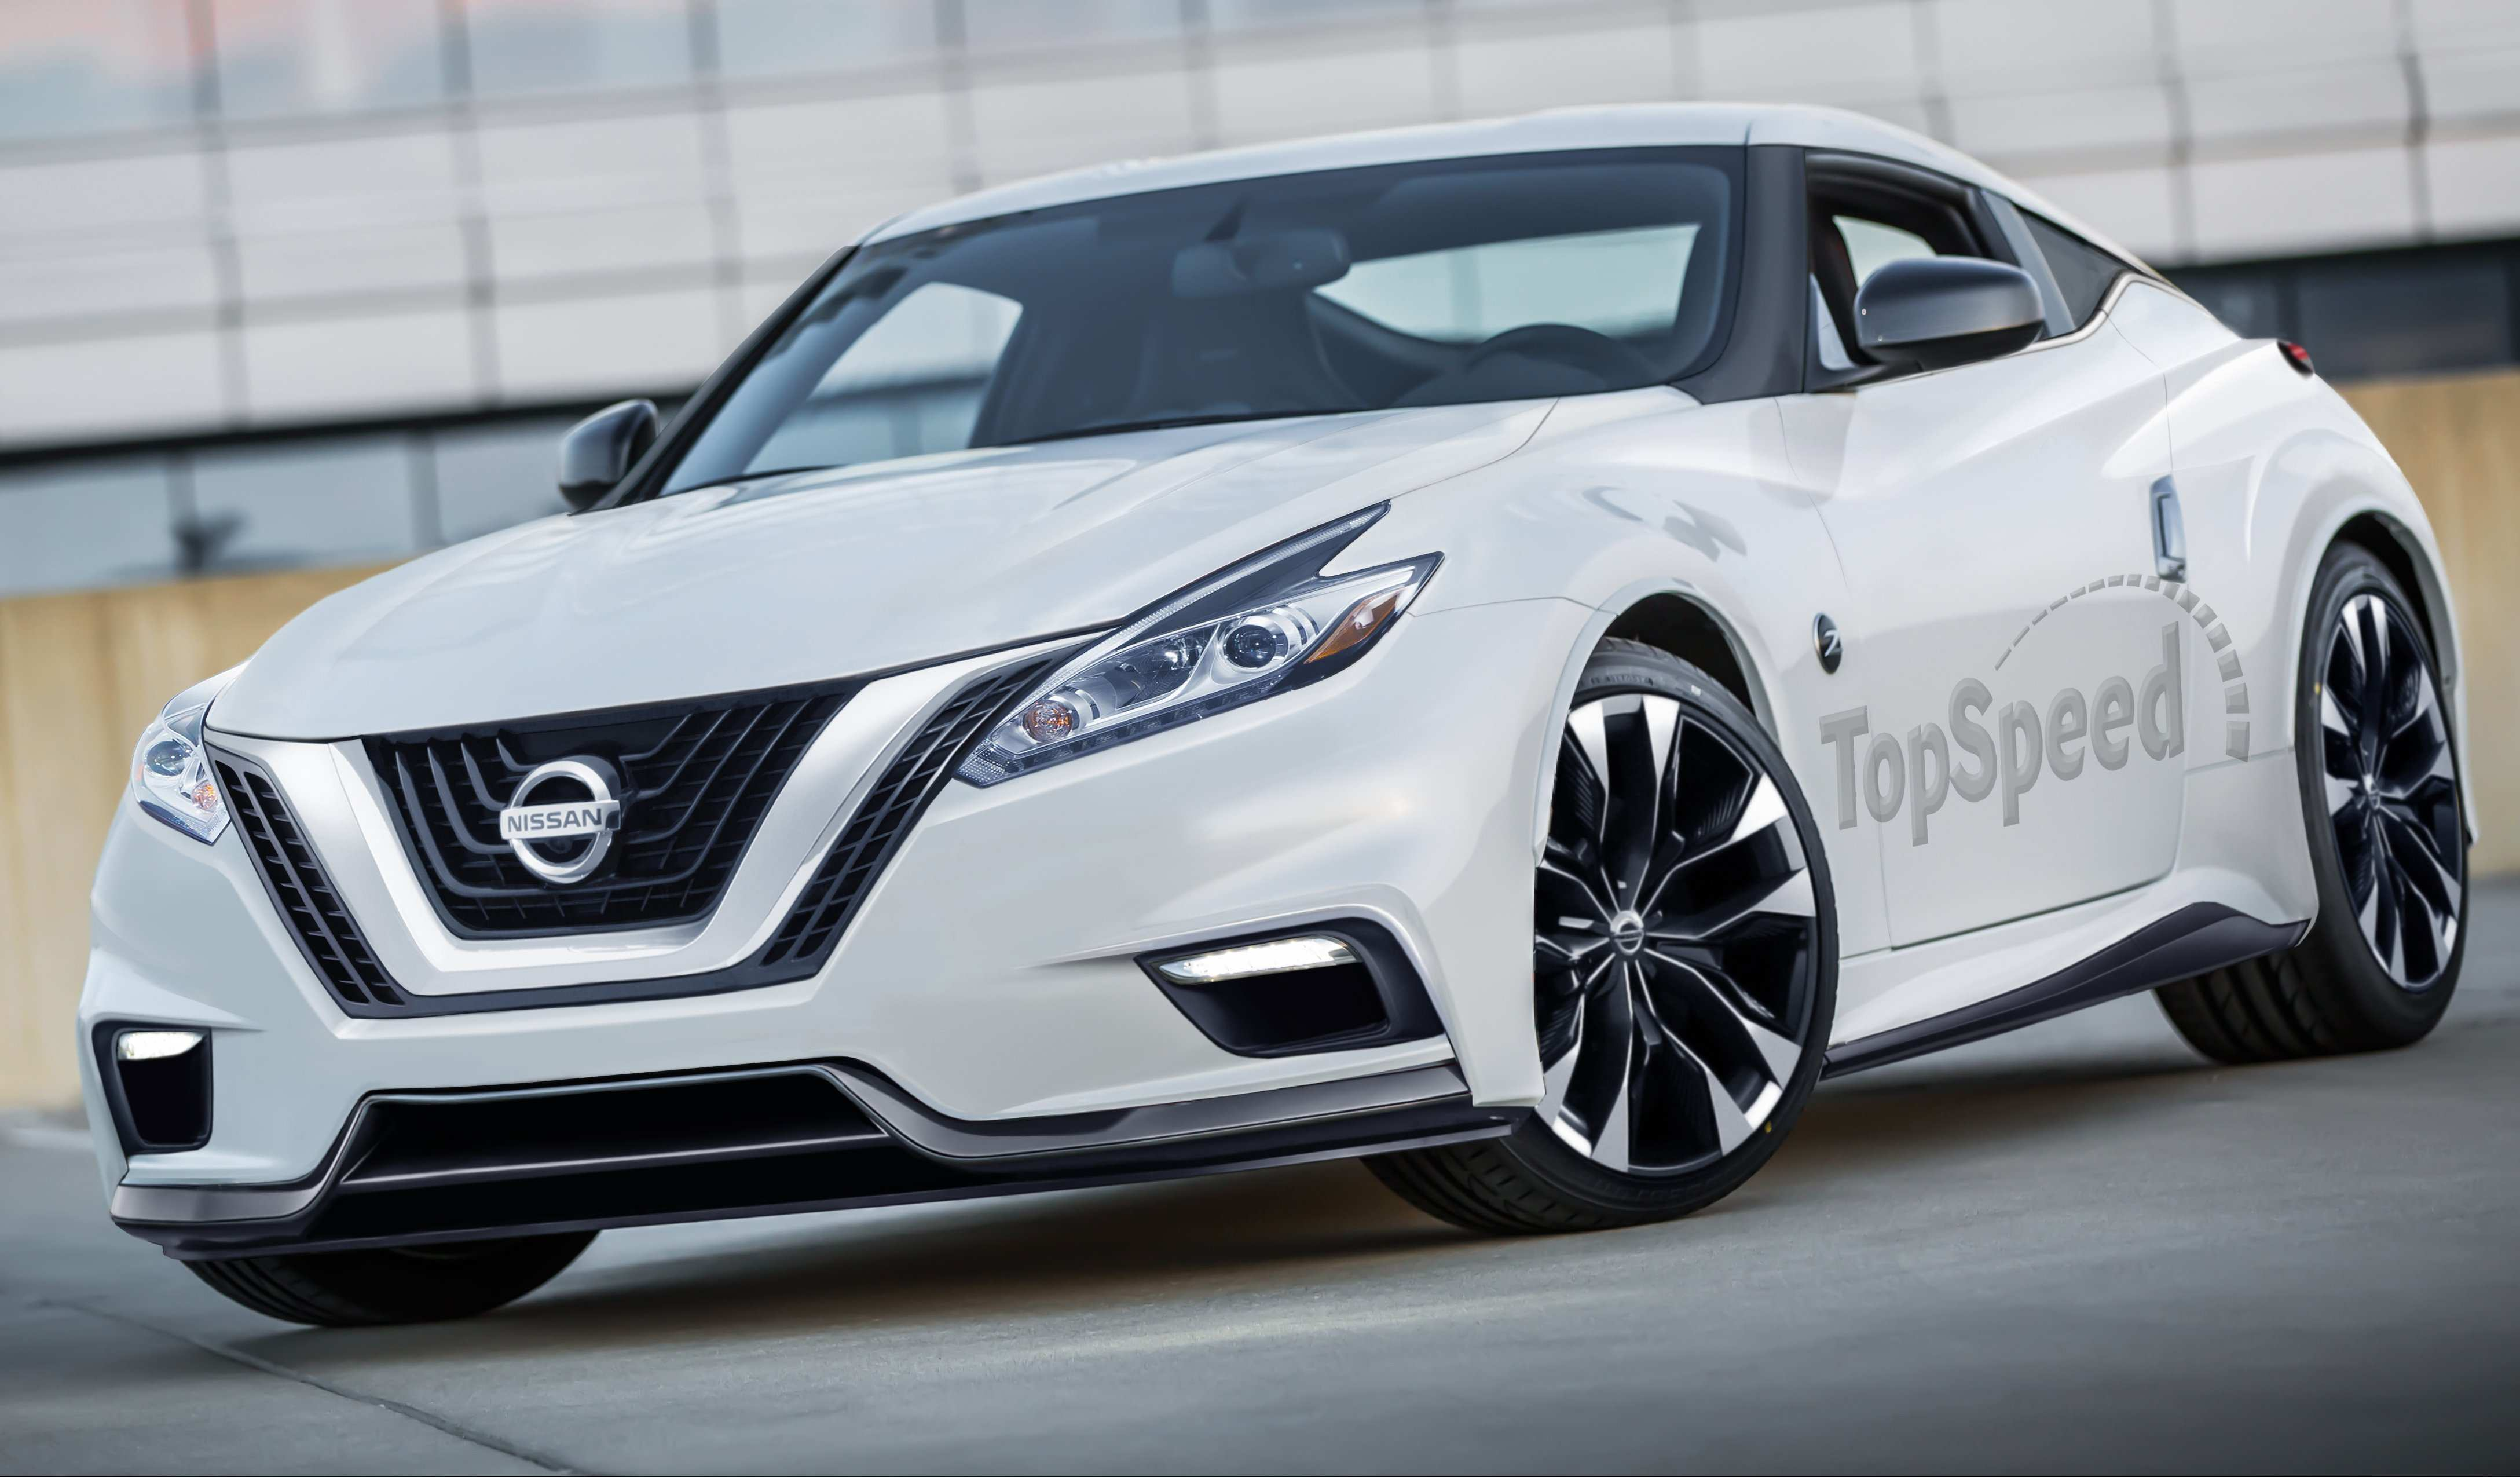 91 The Best 2020 Nissan Z Nismo Specs And Review